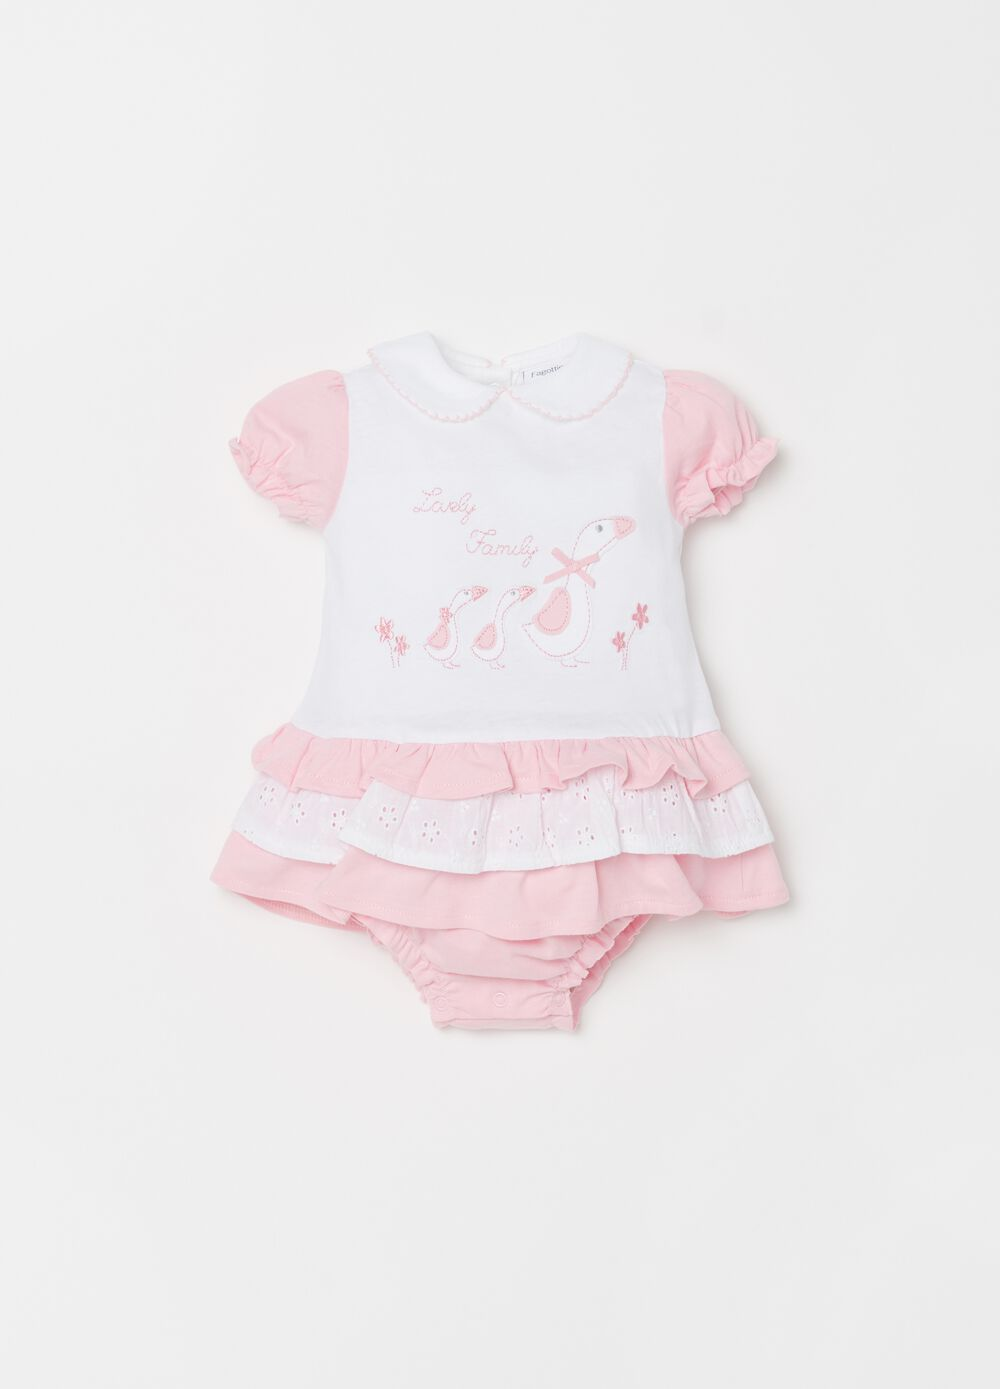 Romper suit with embroidery and flounced skirt